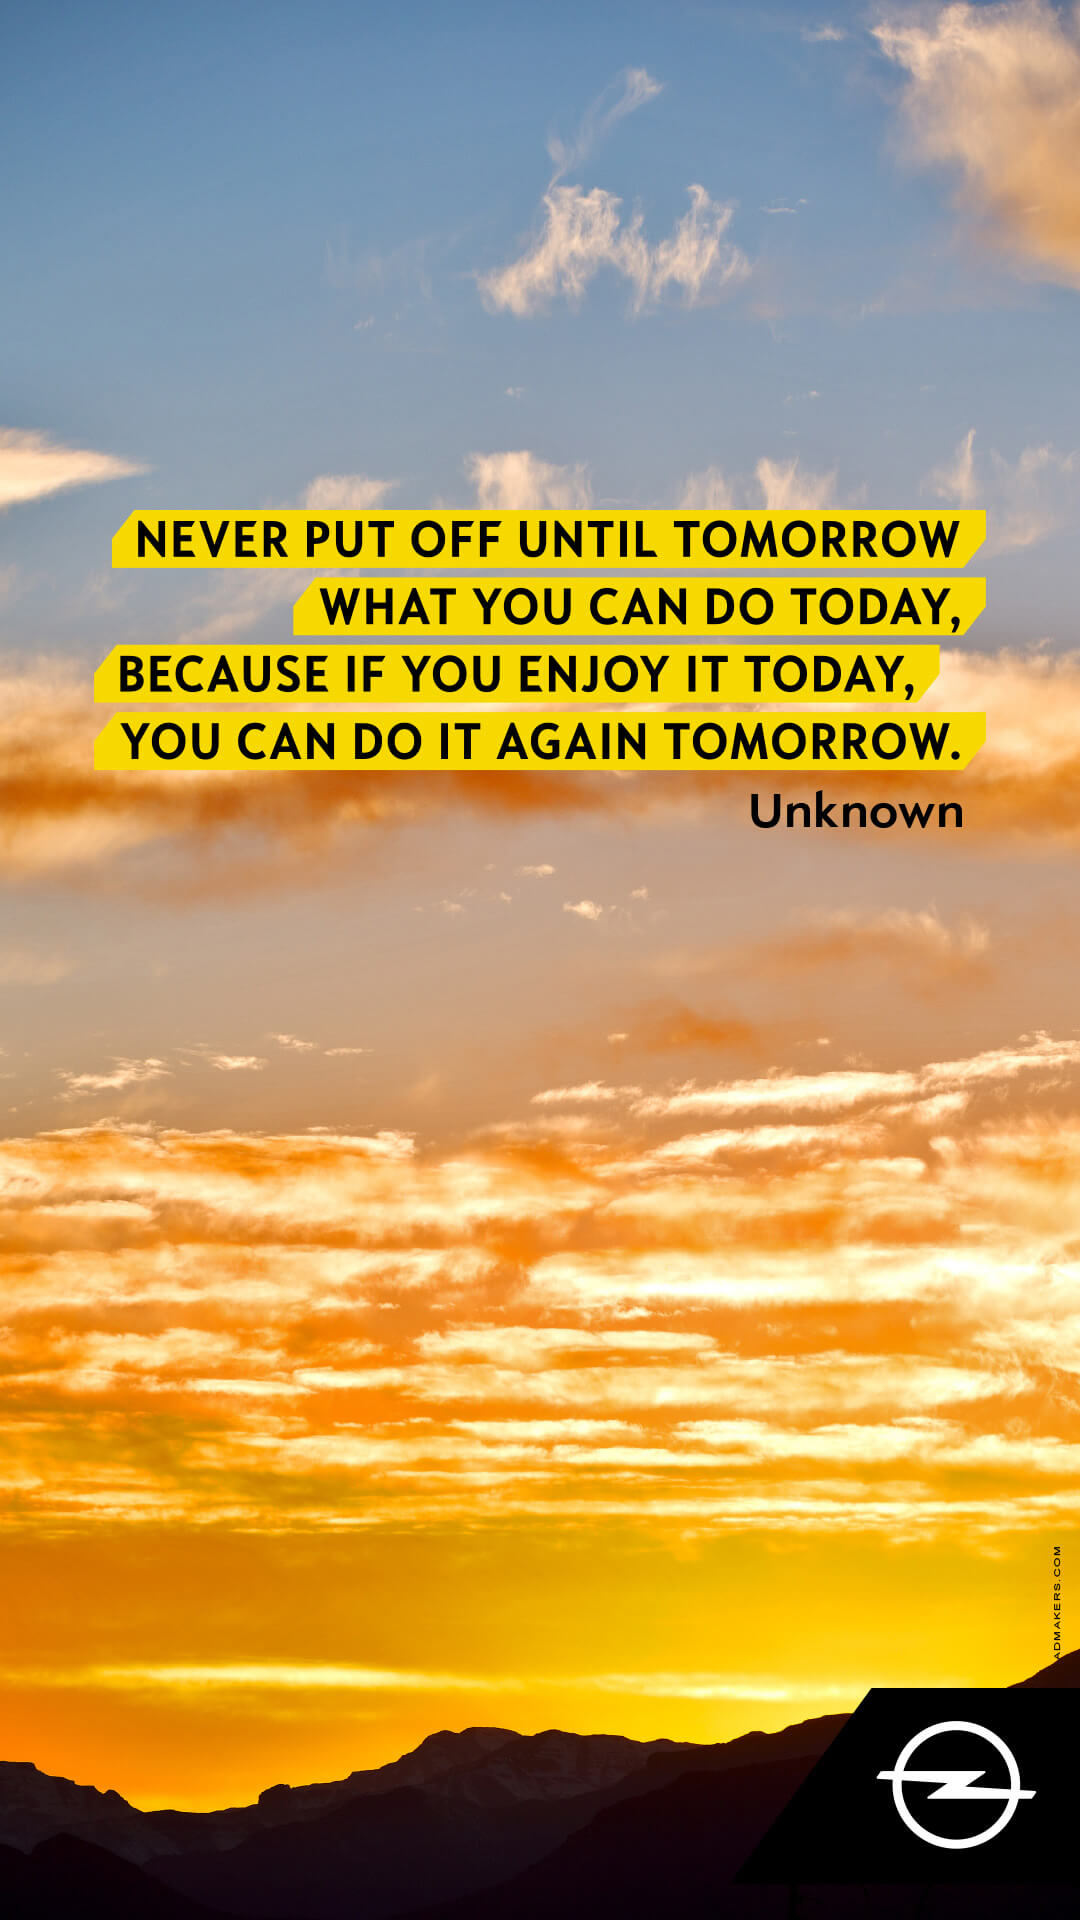 Never put off until tomorrow what you can do today, because if you enjoy it today, you can do it again tomorrow.